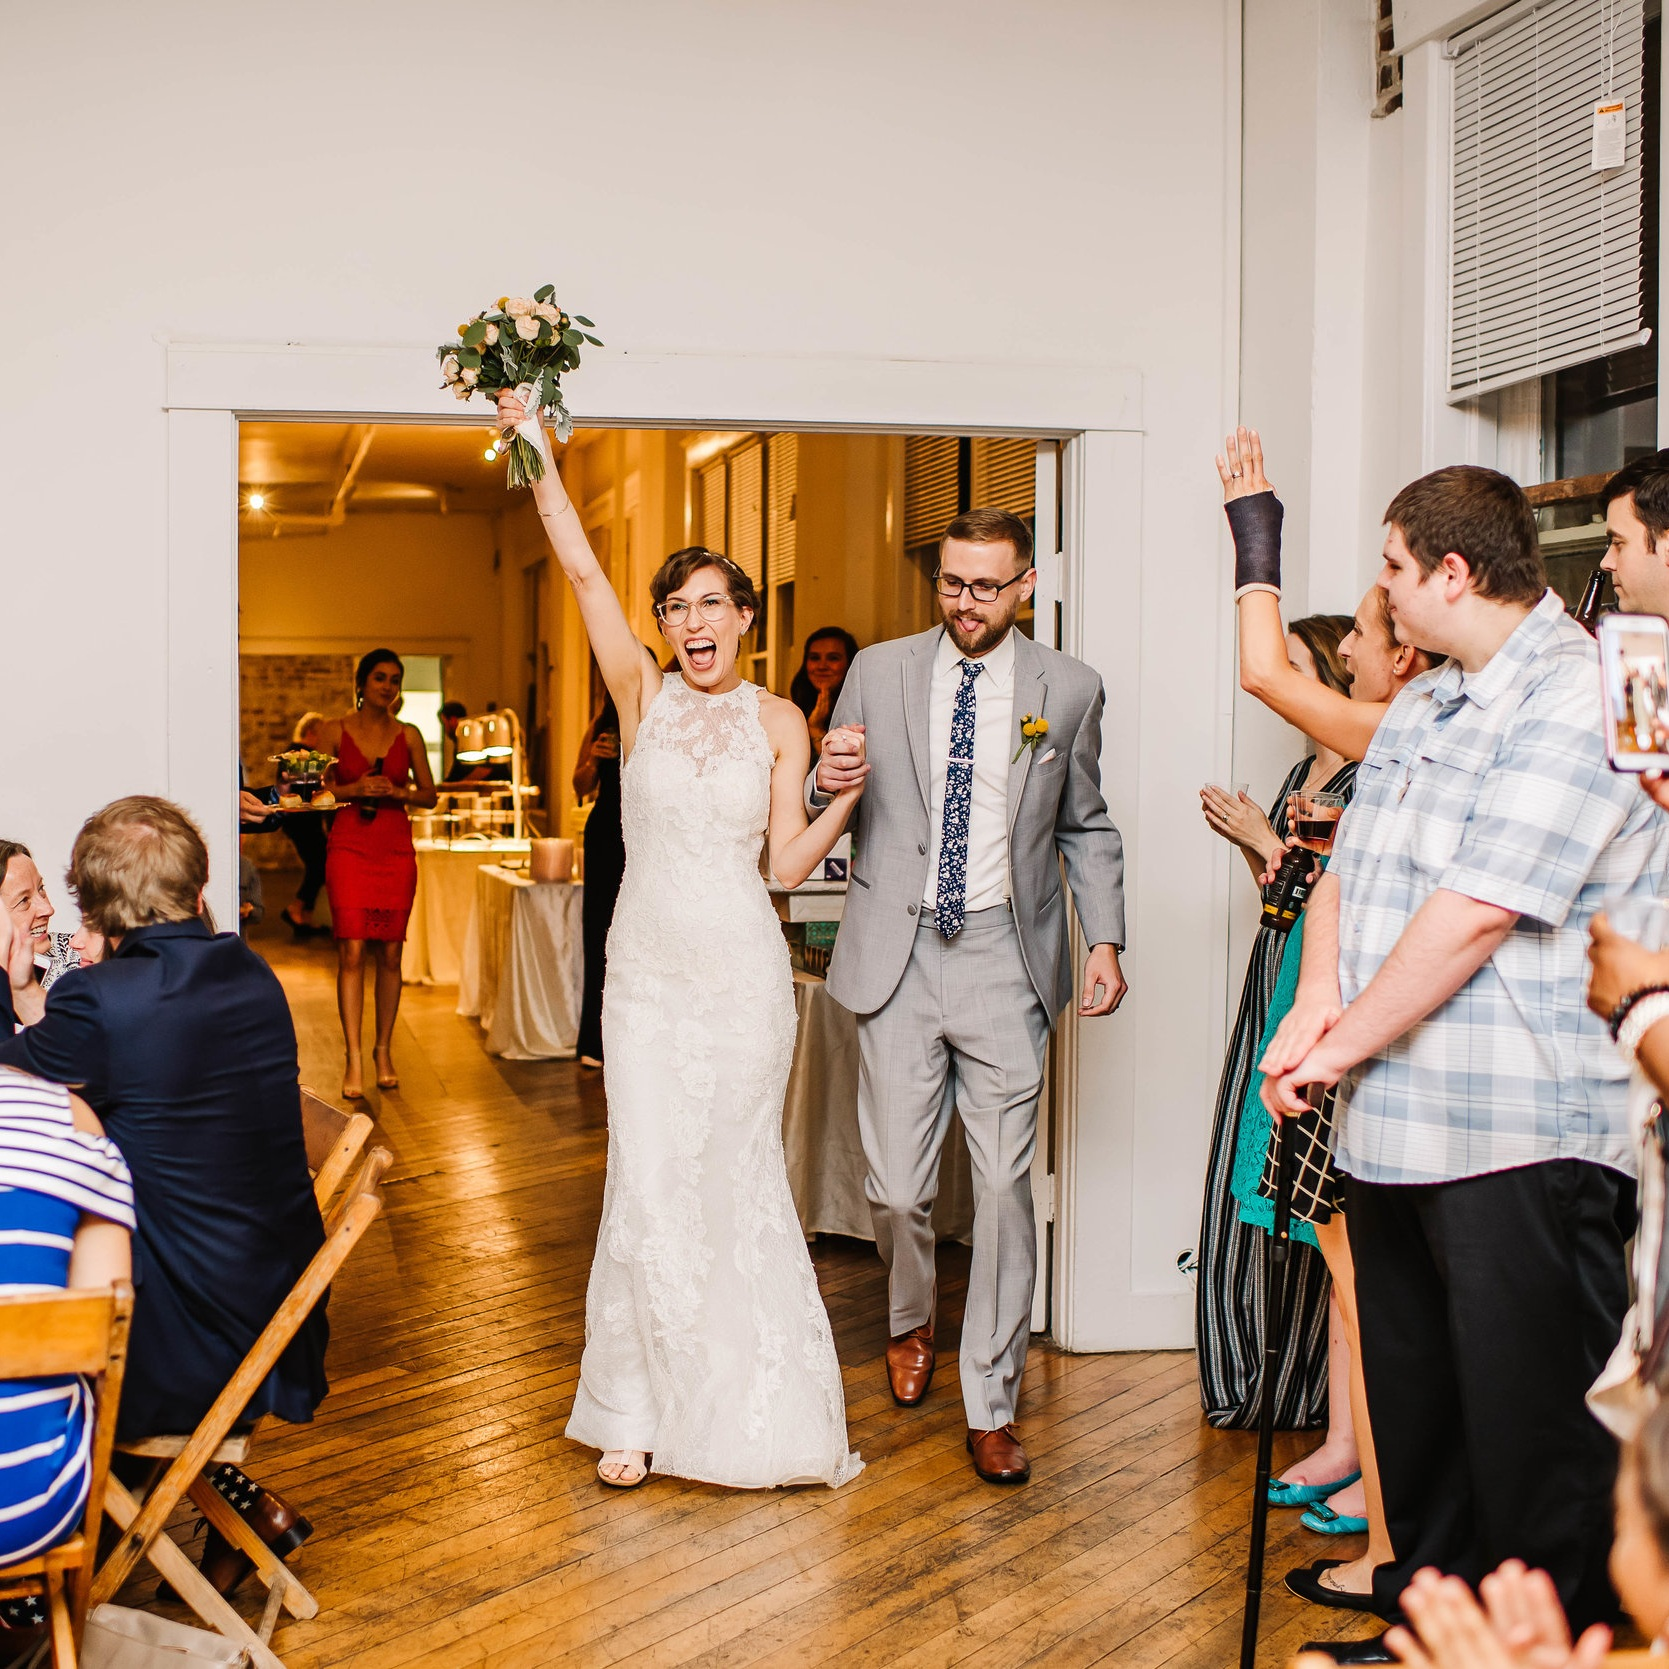 Jack+Robinson+Gallery+Memphis+Wedding_Tidquist+Wedding_Ashley+Benham+Photography-500.jpg